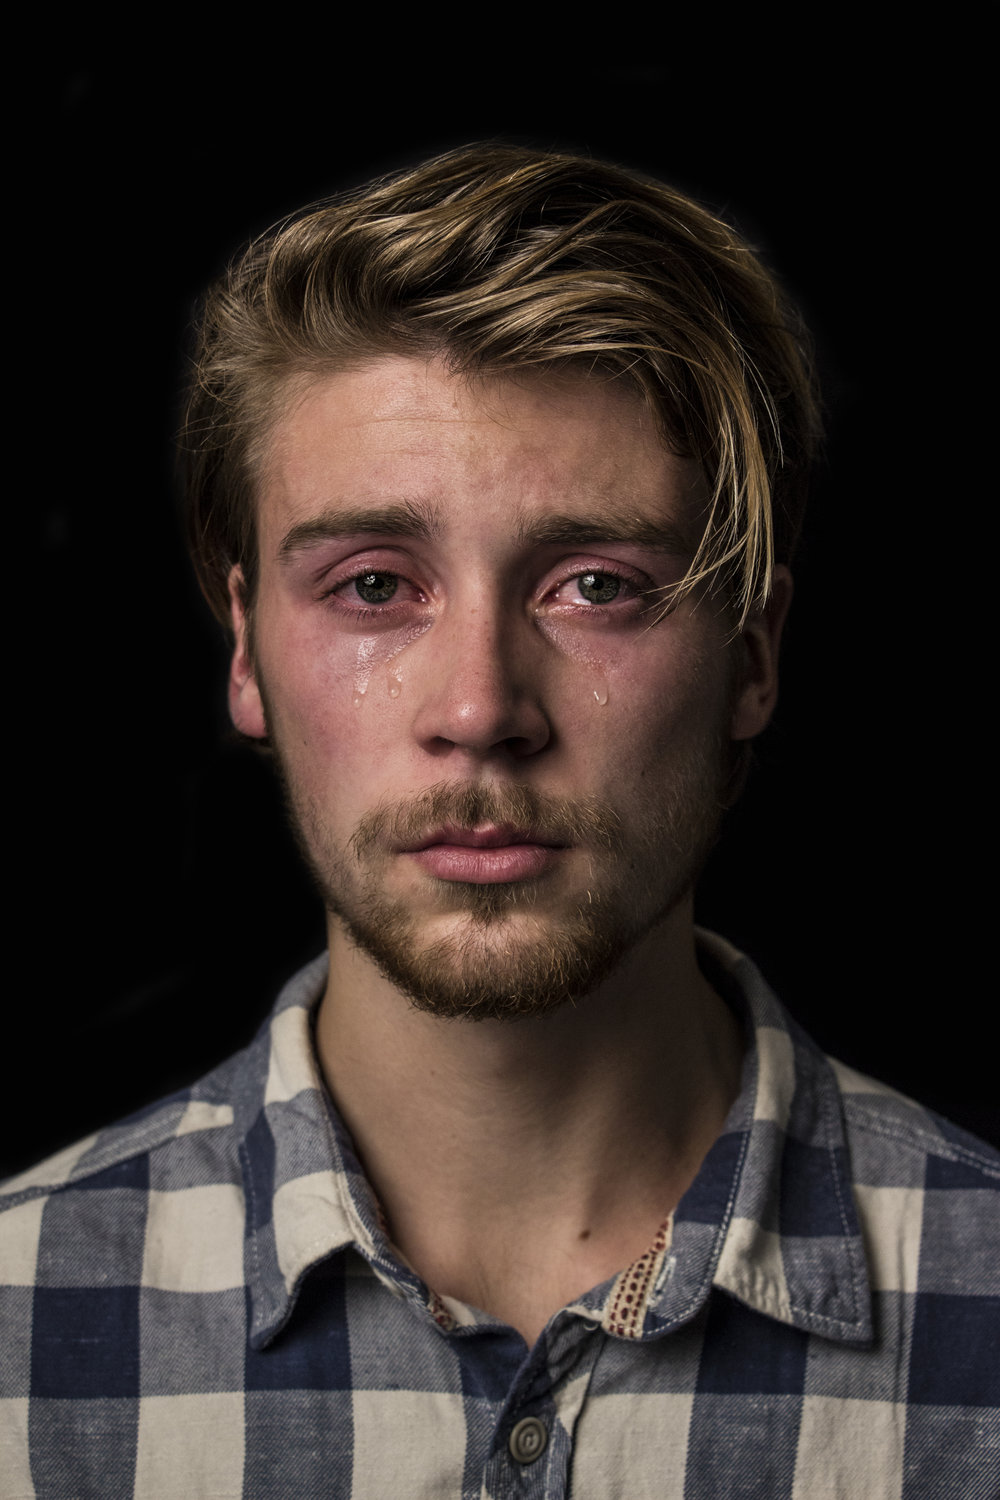 Jip (20)   Emotional crying is one of the few things that differentiate us from animals. Ironically, so i the urge to suppress our nature because of social constructs.